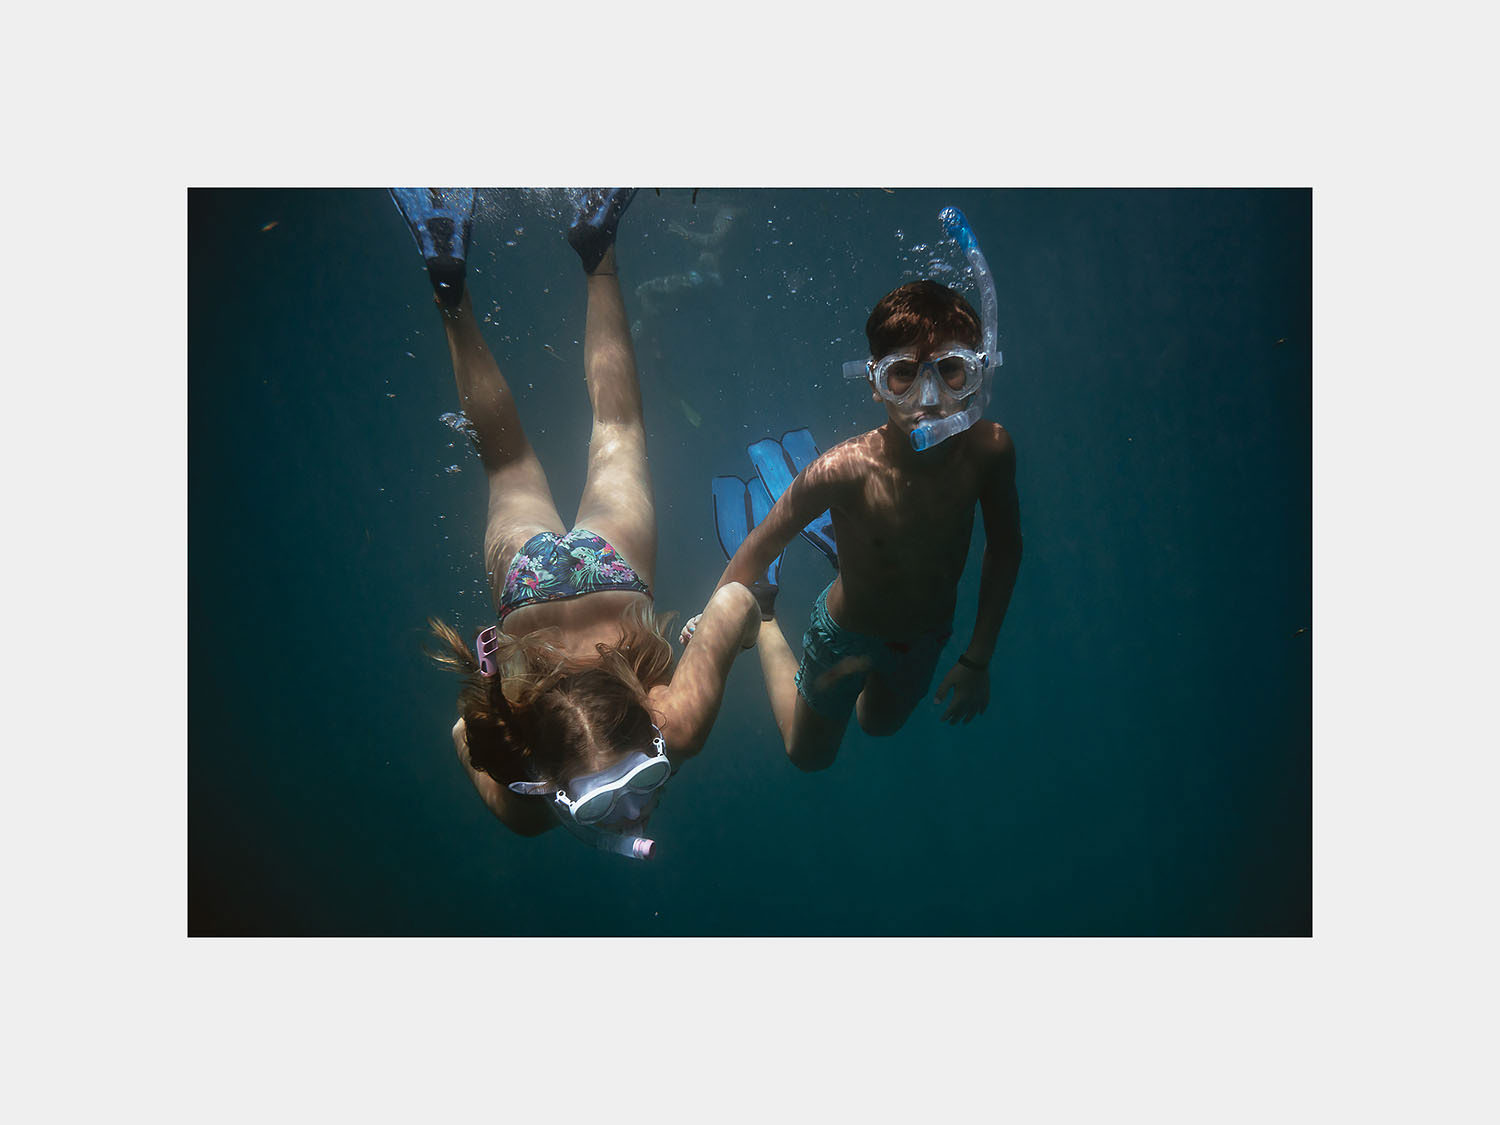 wedding photographer in maldives anniversary trip cocoon last day snorkeling excursion